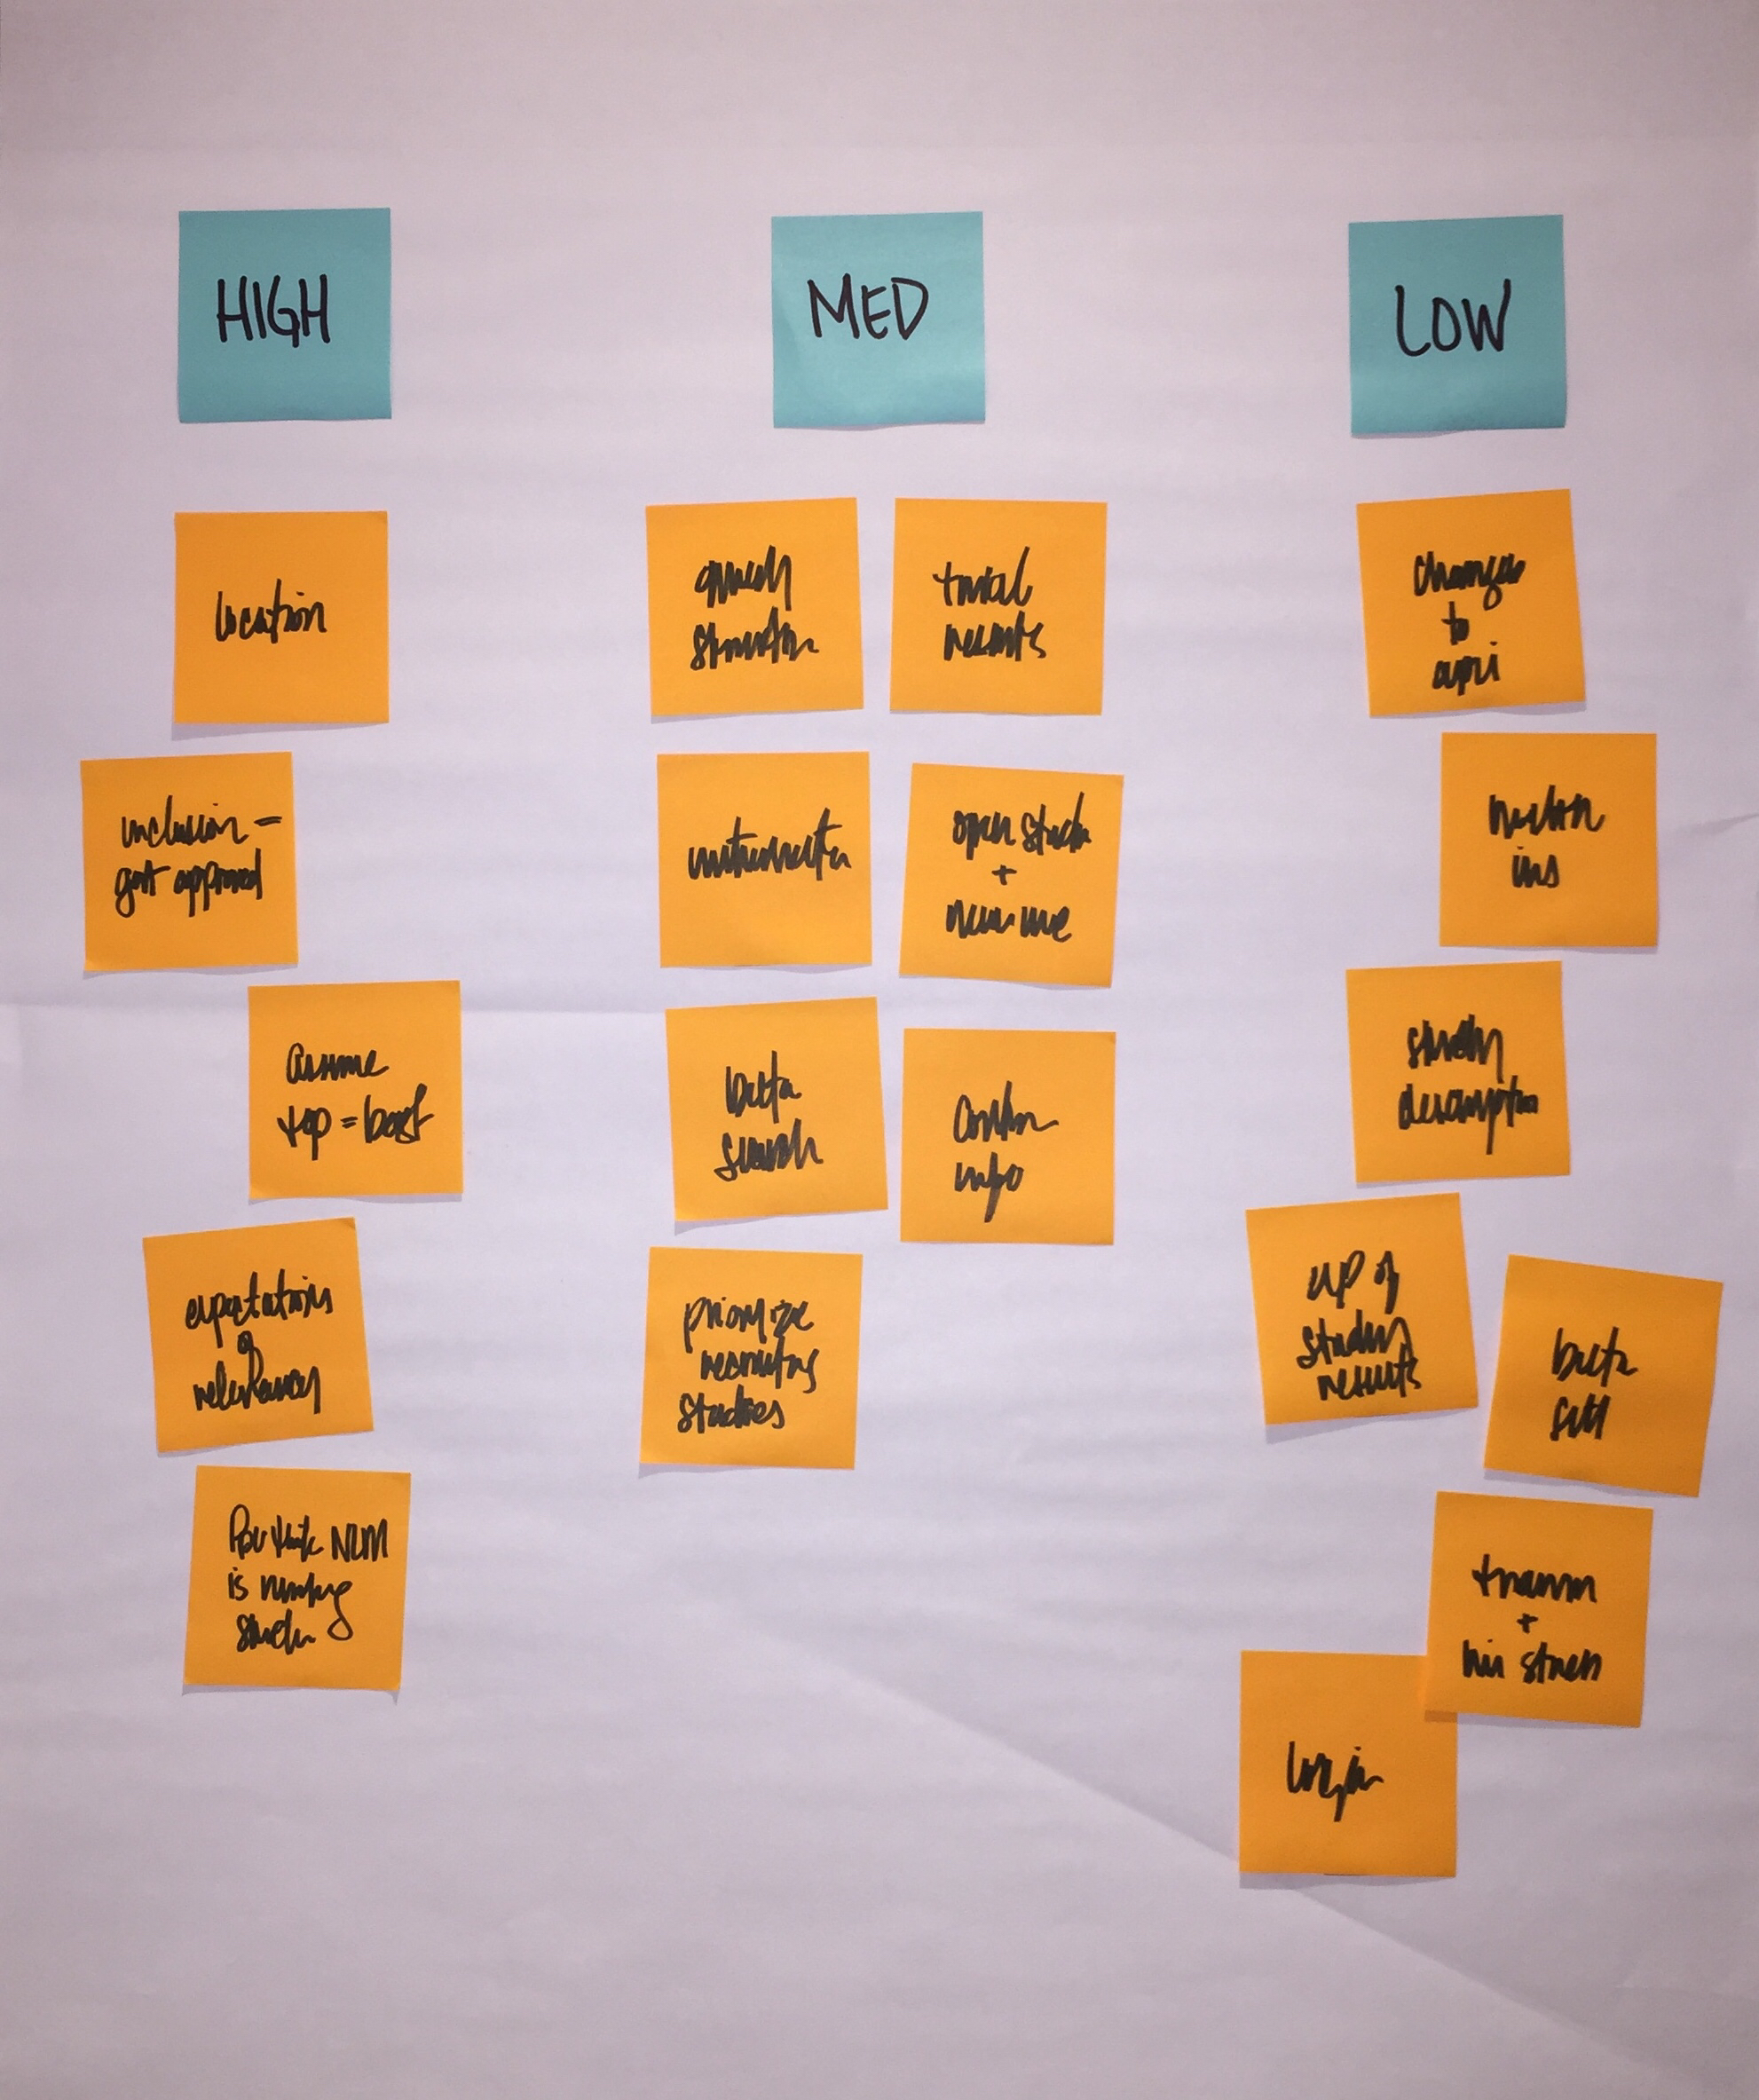 image of a large white butcher paper with three columns.  Each column has a header that relate to level of priority - High, medium, low. Below each header are various post-its